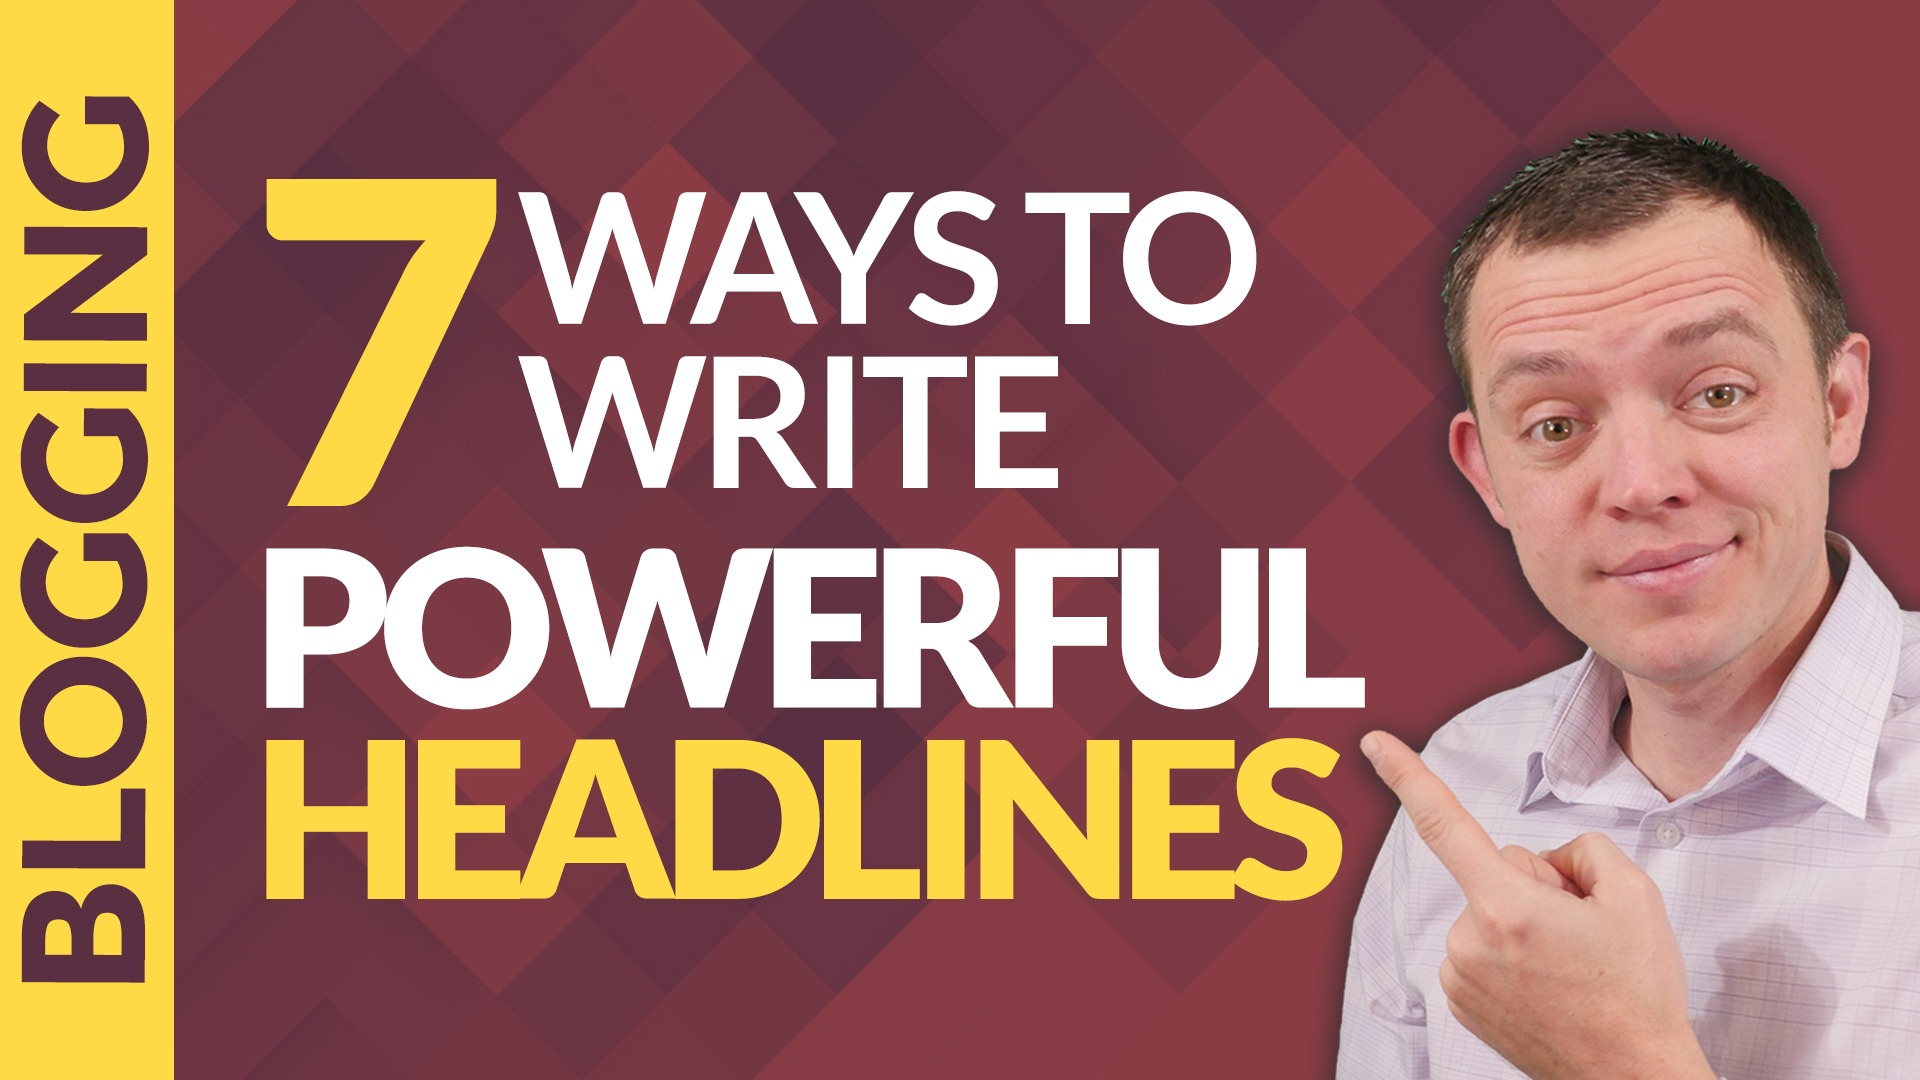 7 Ways to Write Powerful Headlines for Your Blog